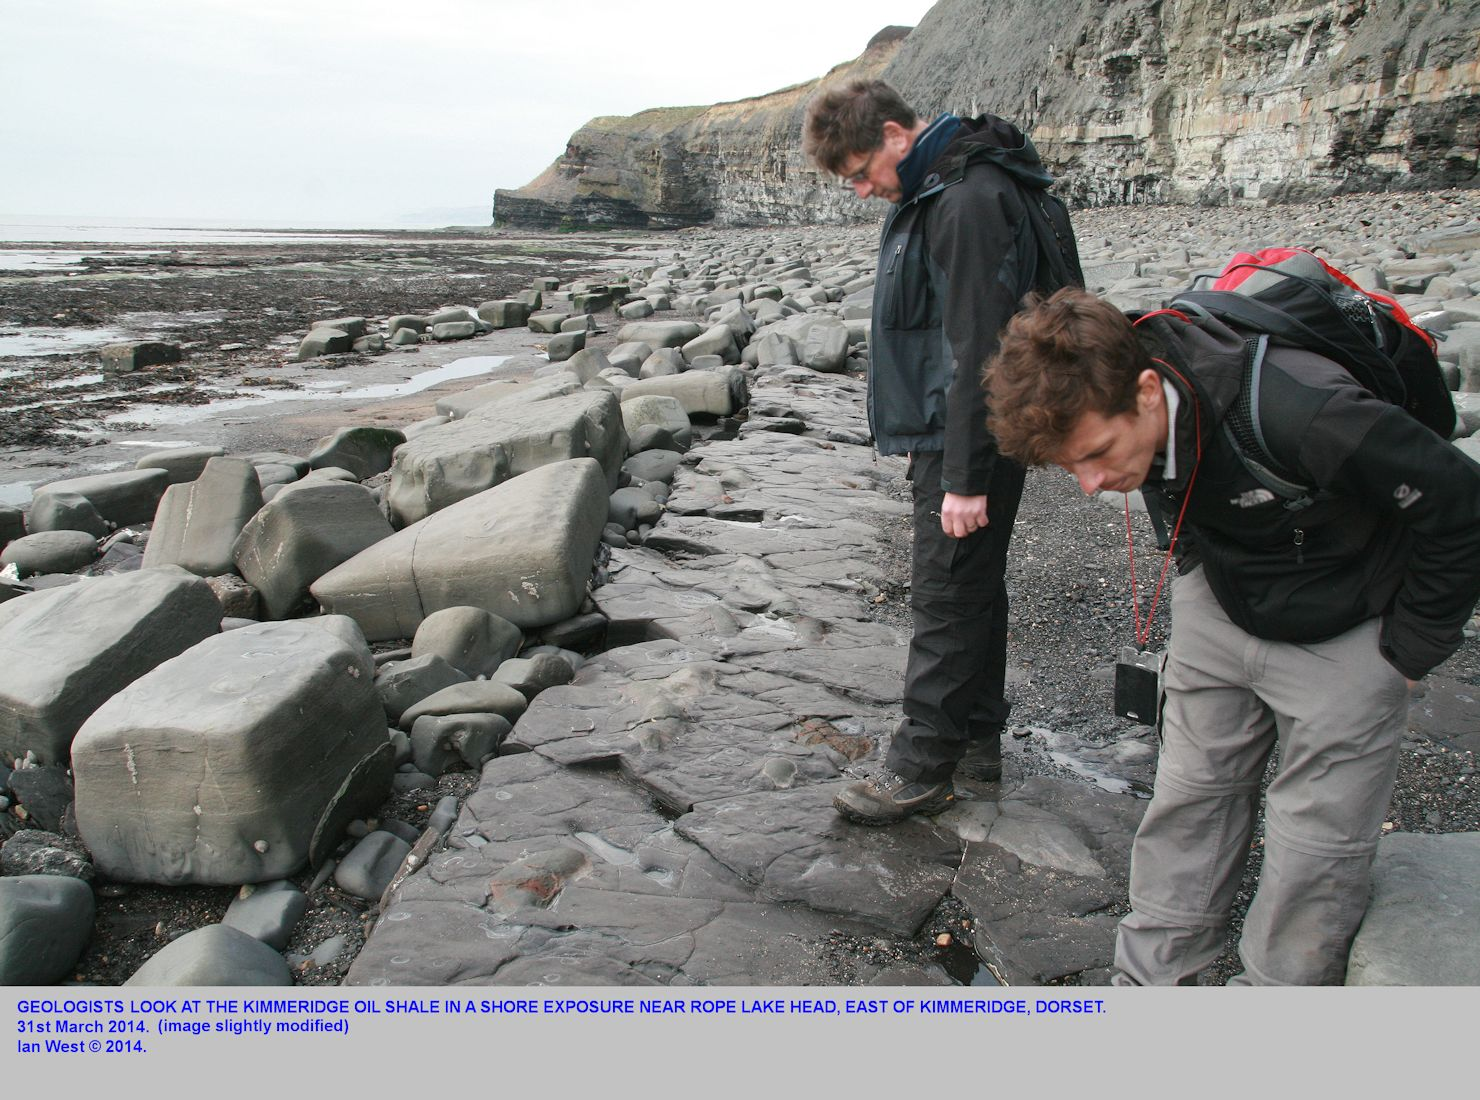 Geologists examine the shore exposure of the Kimmeridge oil shale or Blackstone, near Rope Lake Head, east of  Kimmeridge Bay, Dorset, 31st March 2014